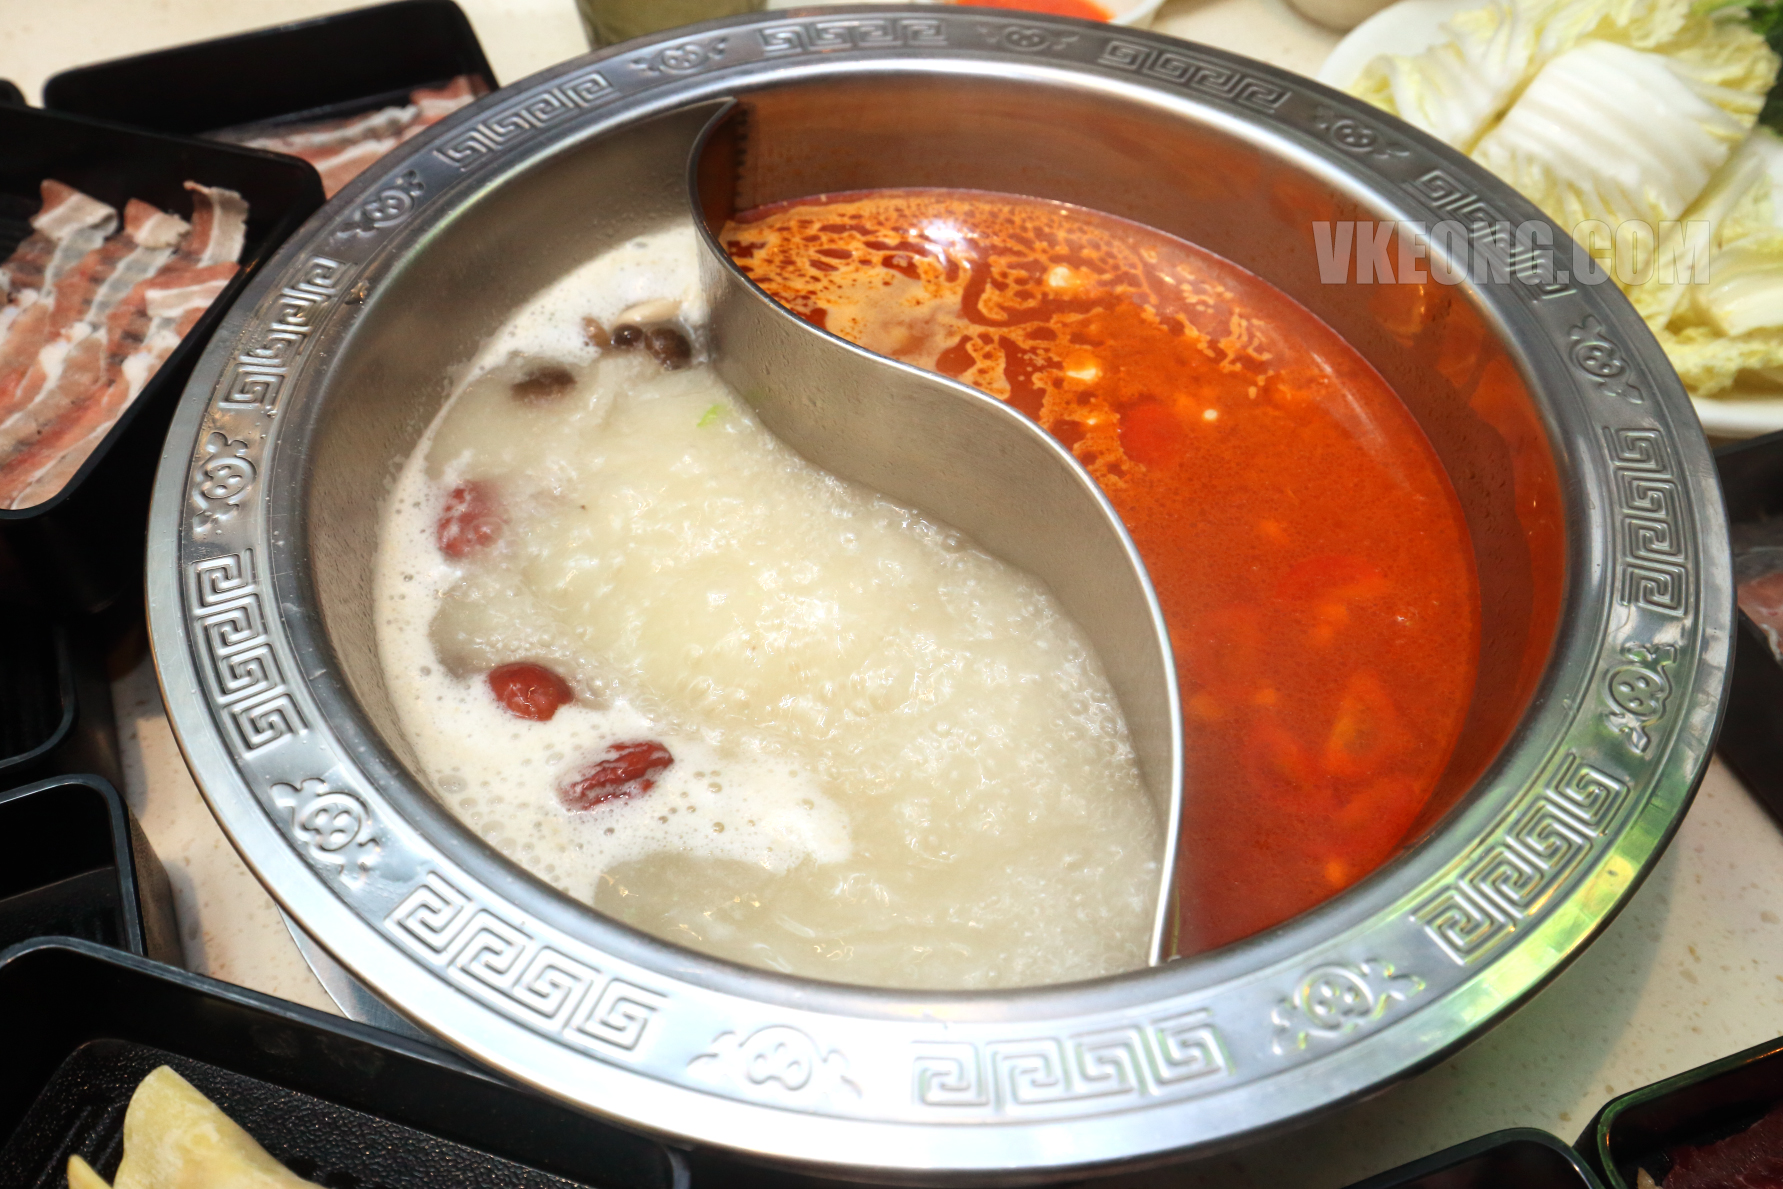 Fei-Fan-Hot-Pot-Pork-Bone-Tomato-Soup